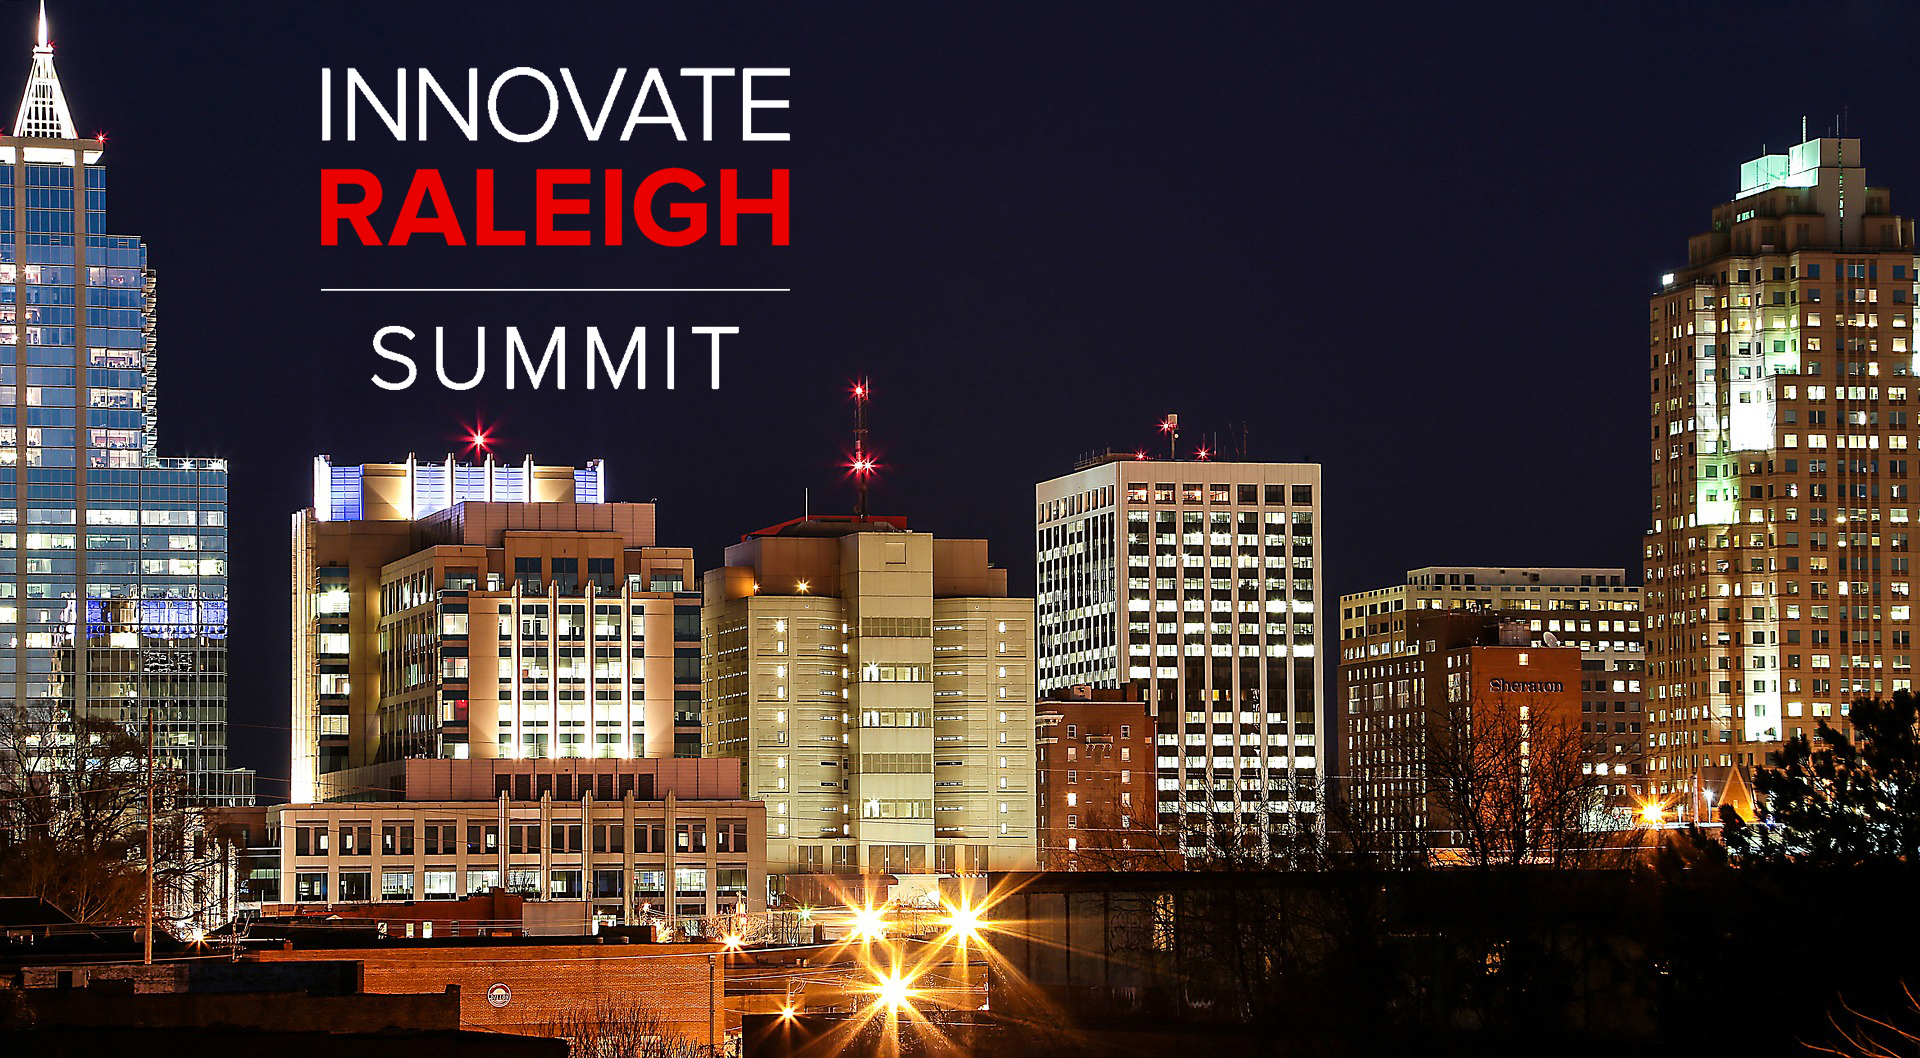 Innovate Raleigh Summit: Fostering innovation and entrepreneurship